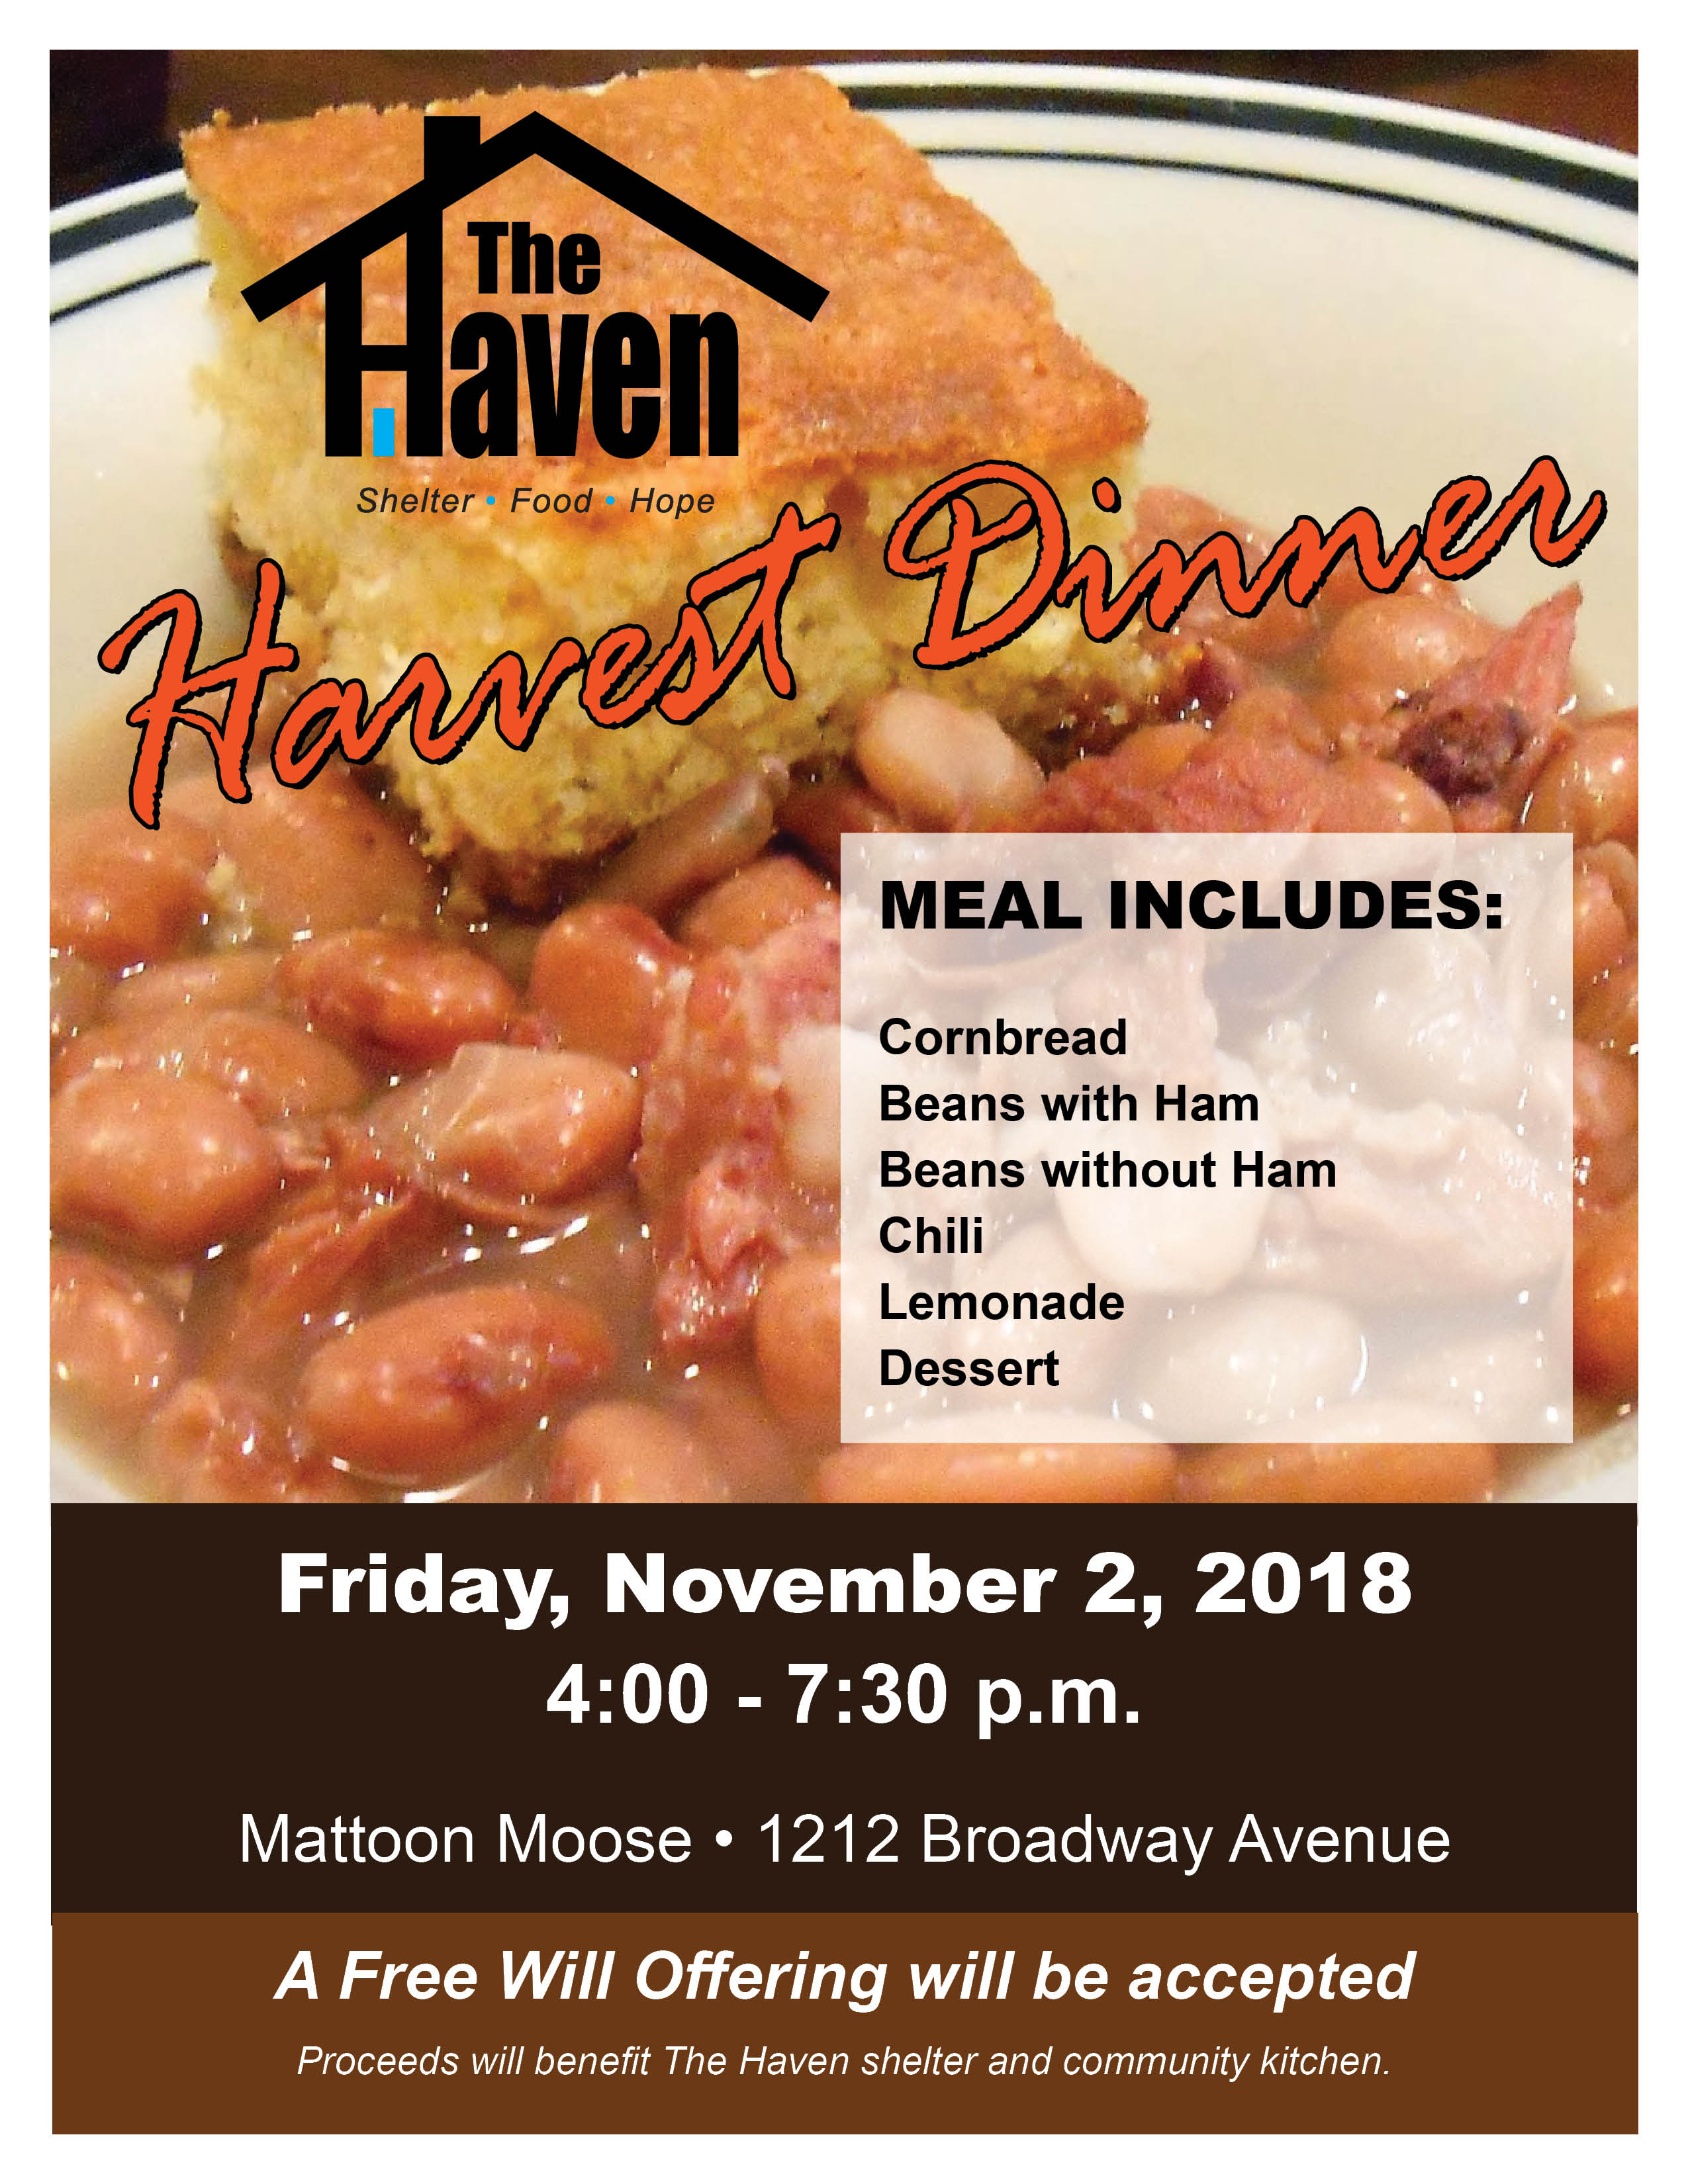 Harvest Dinner @ Mattoon Moose | Mattoon | Illinois | United States